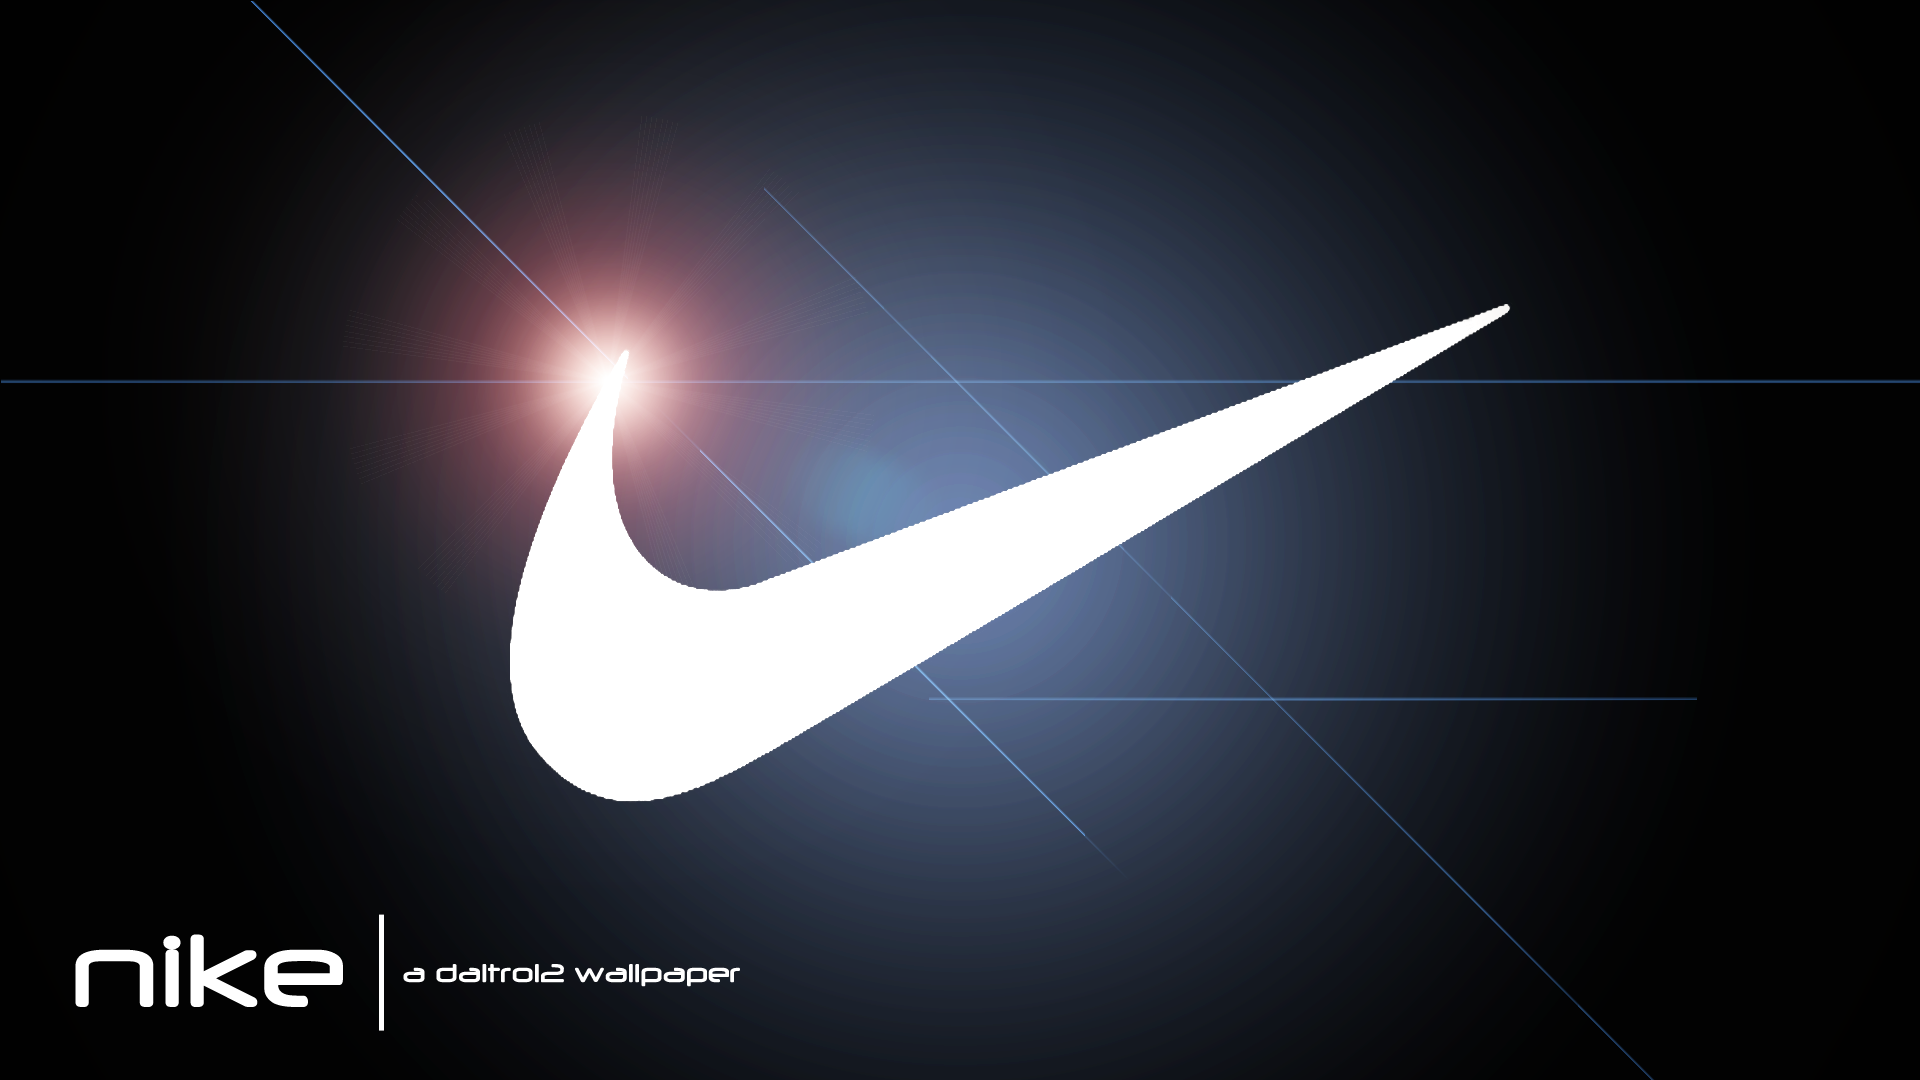 Hd wallpaper nike - Hd New Nike Logo 2016 Wallpaper Hd 1080 Full Size Hirewallpapers